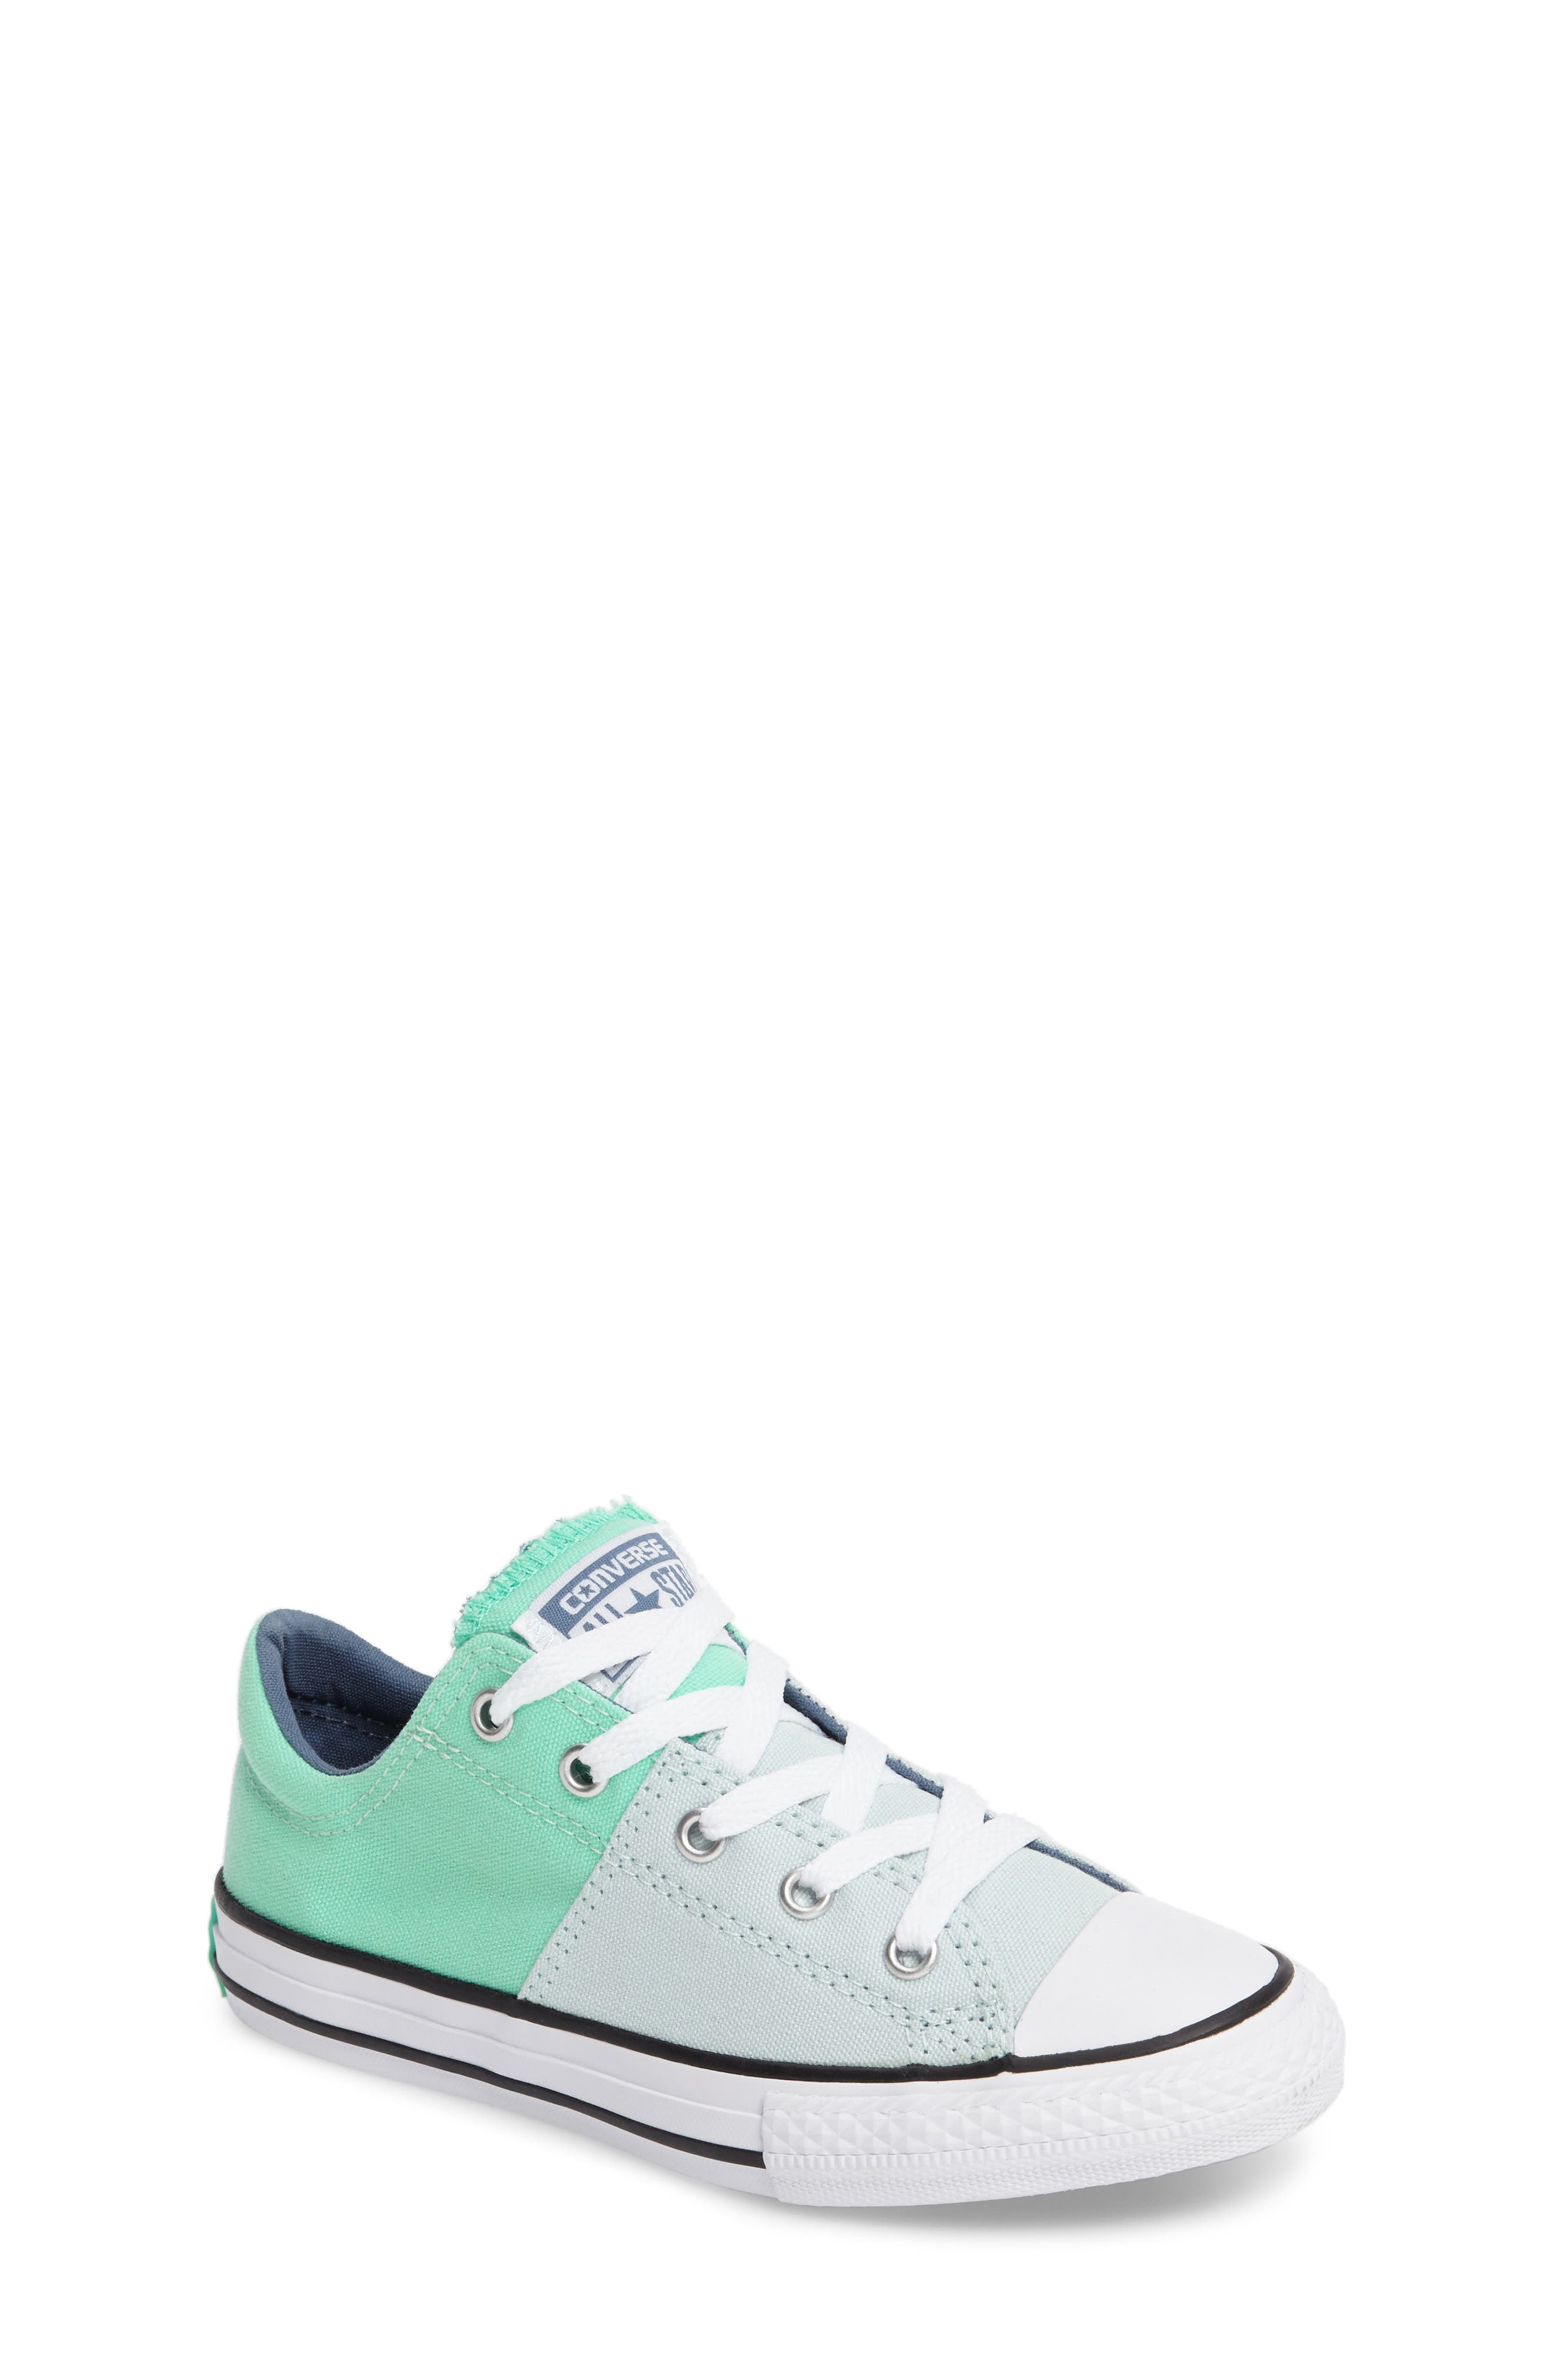 Chuck Taylor<sup>®</sup> All Star<sup>®</sup> Madison Low Top Sneaker,                             Main thumbnail 5, color,